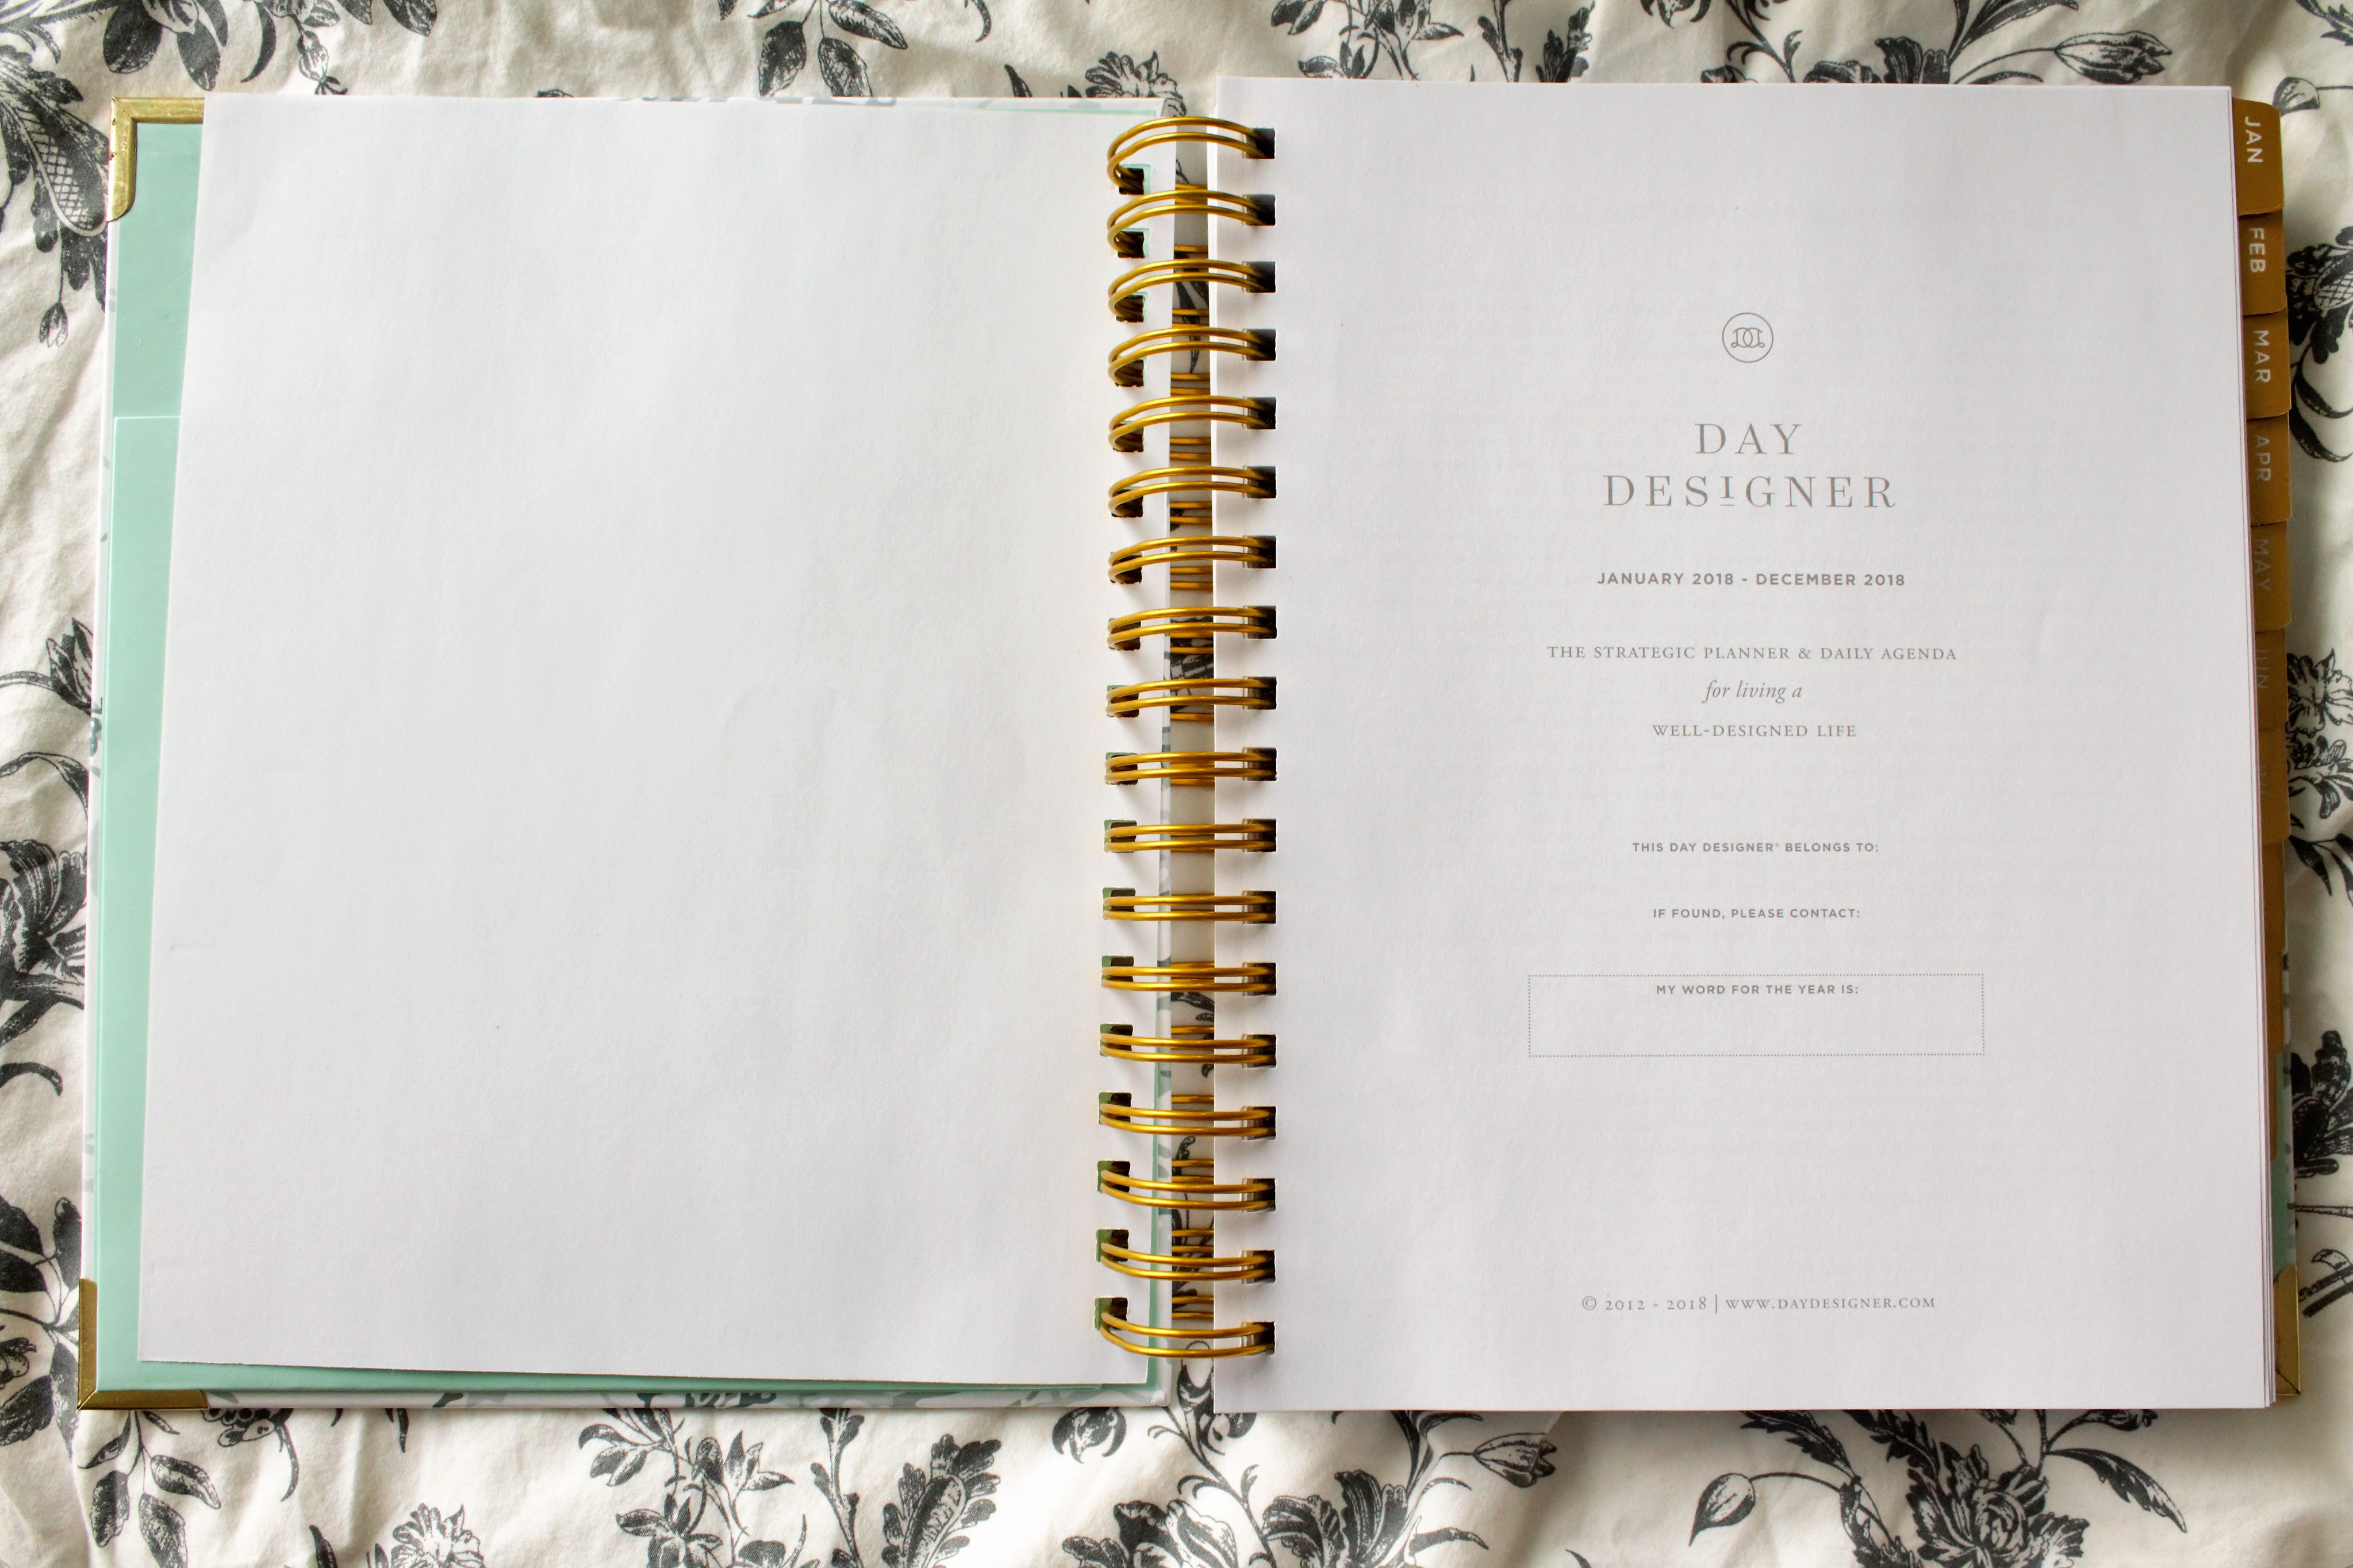 image relating to The Day Designer called The Working day Designer 2018 Flagship Planner PLANNERISMA